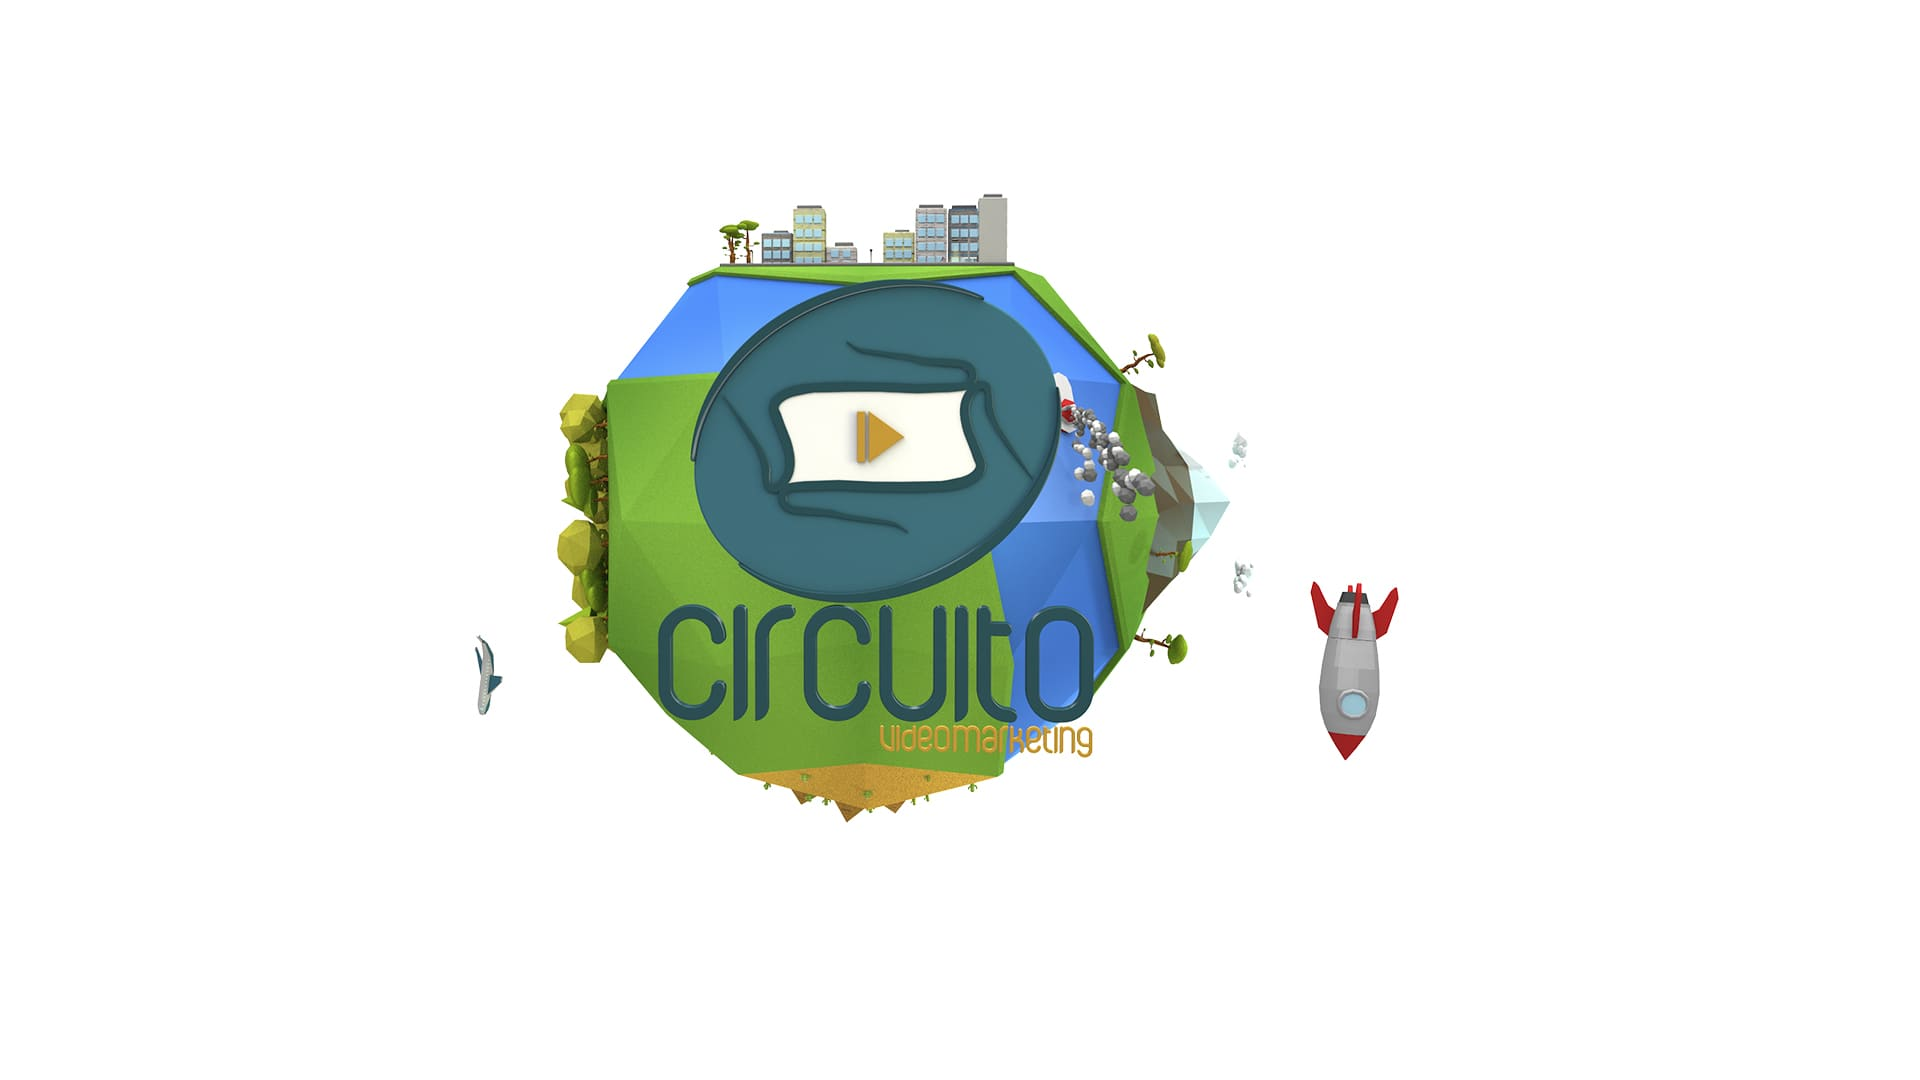 circuito video marketing (2)